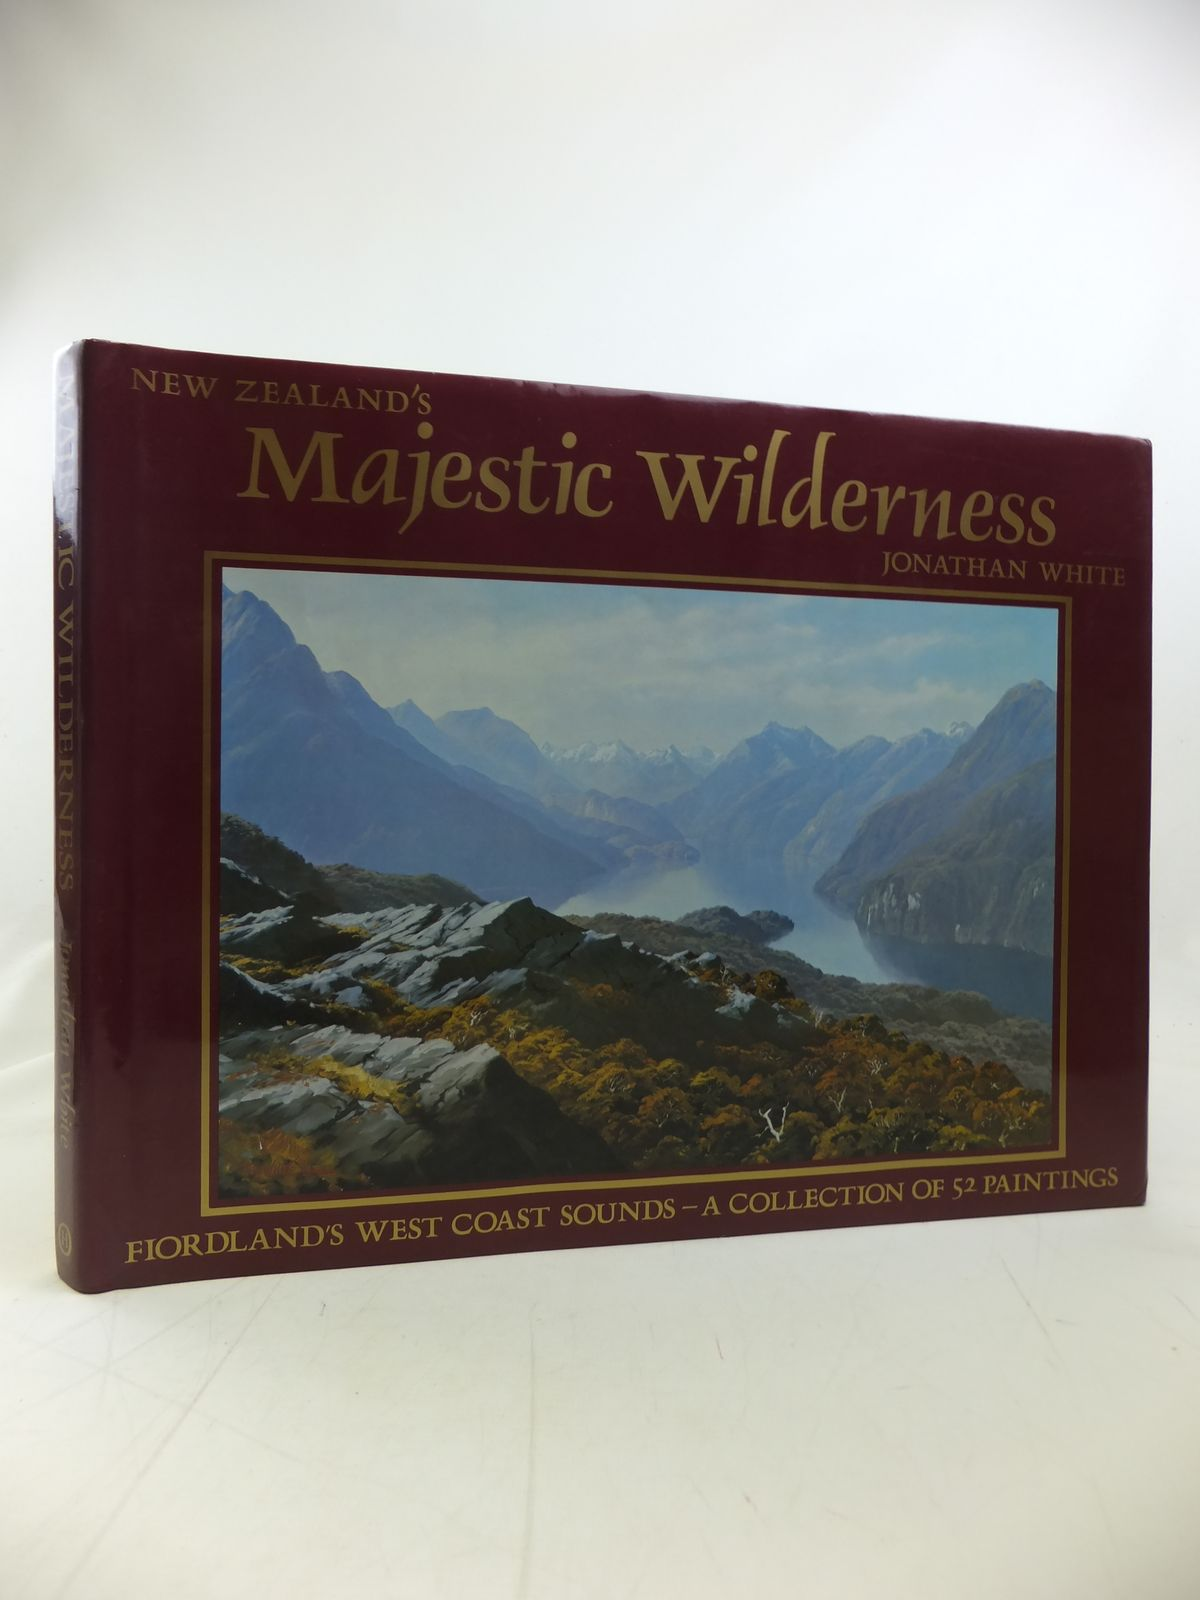 Photo of NEW ZEALAND'S MAJESTIC WILDERNESS written by Hall-Jones, John illustrated by White, Jonathan published by Orakau House (STOCK CODE: 1810245)  for sale by Stella & Rose's Books